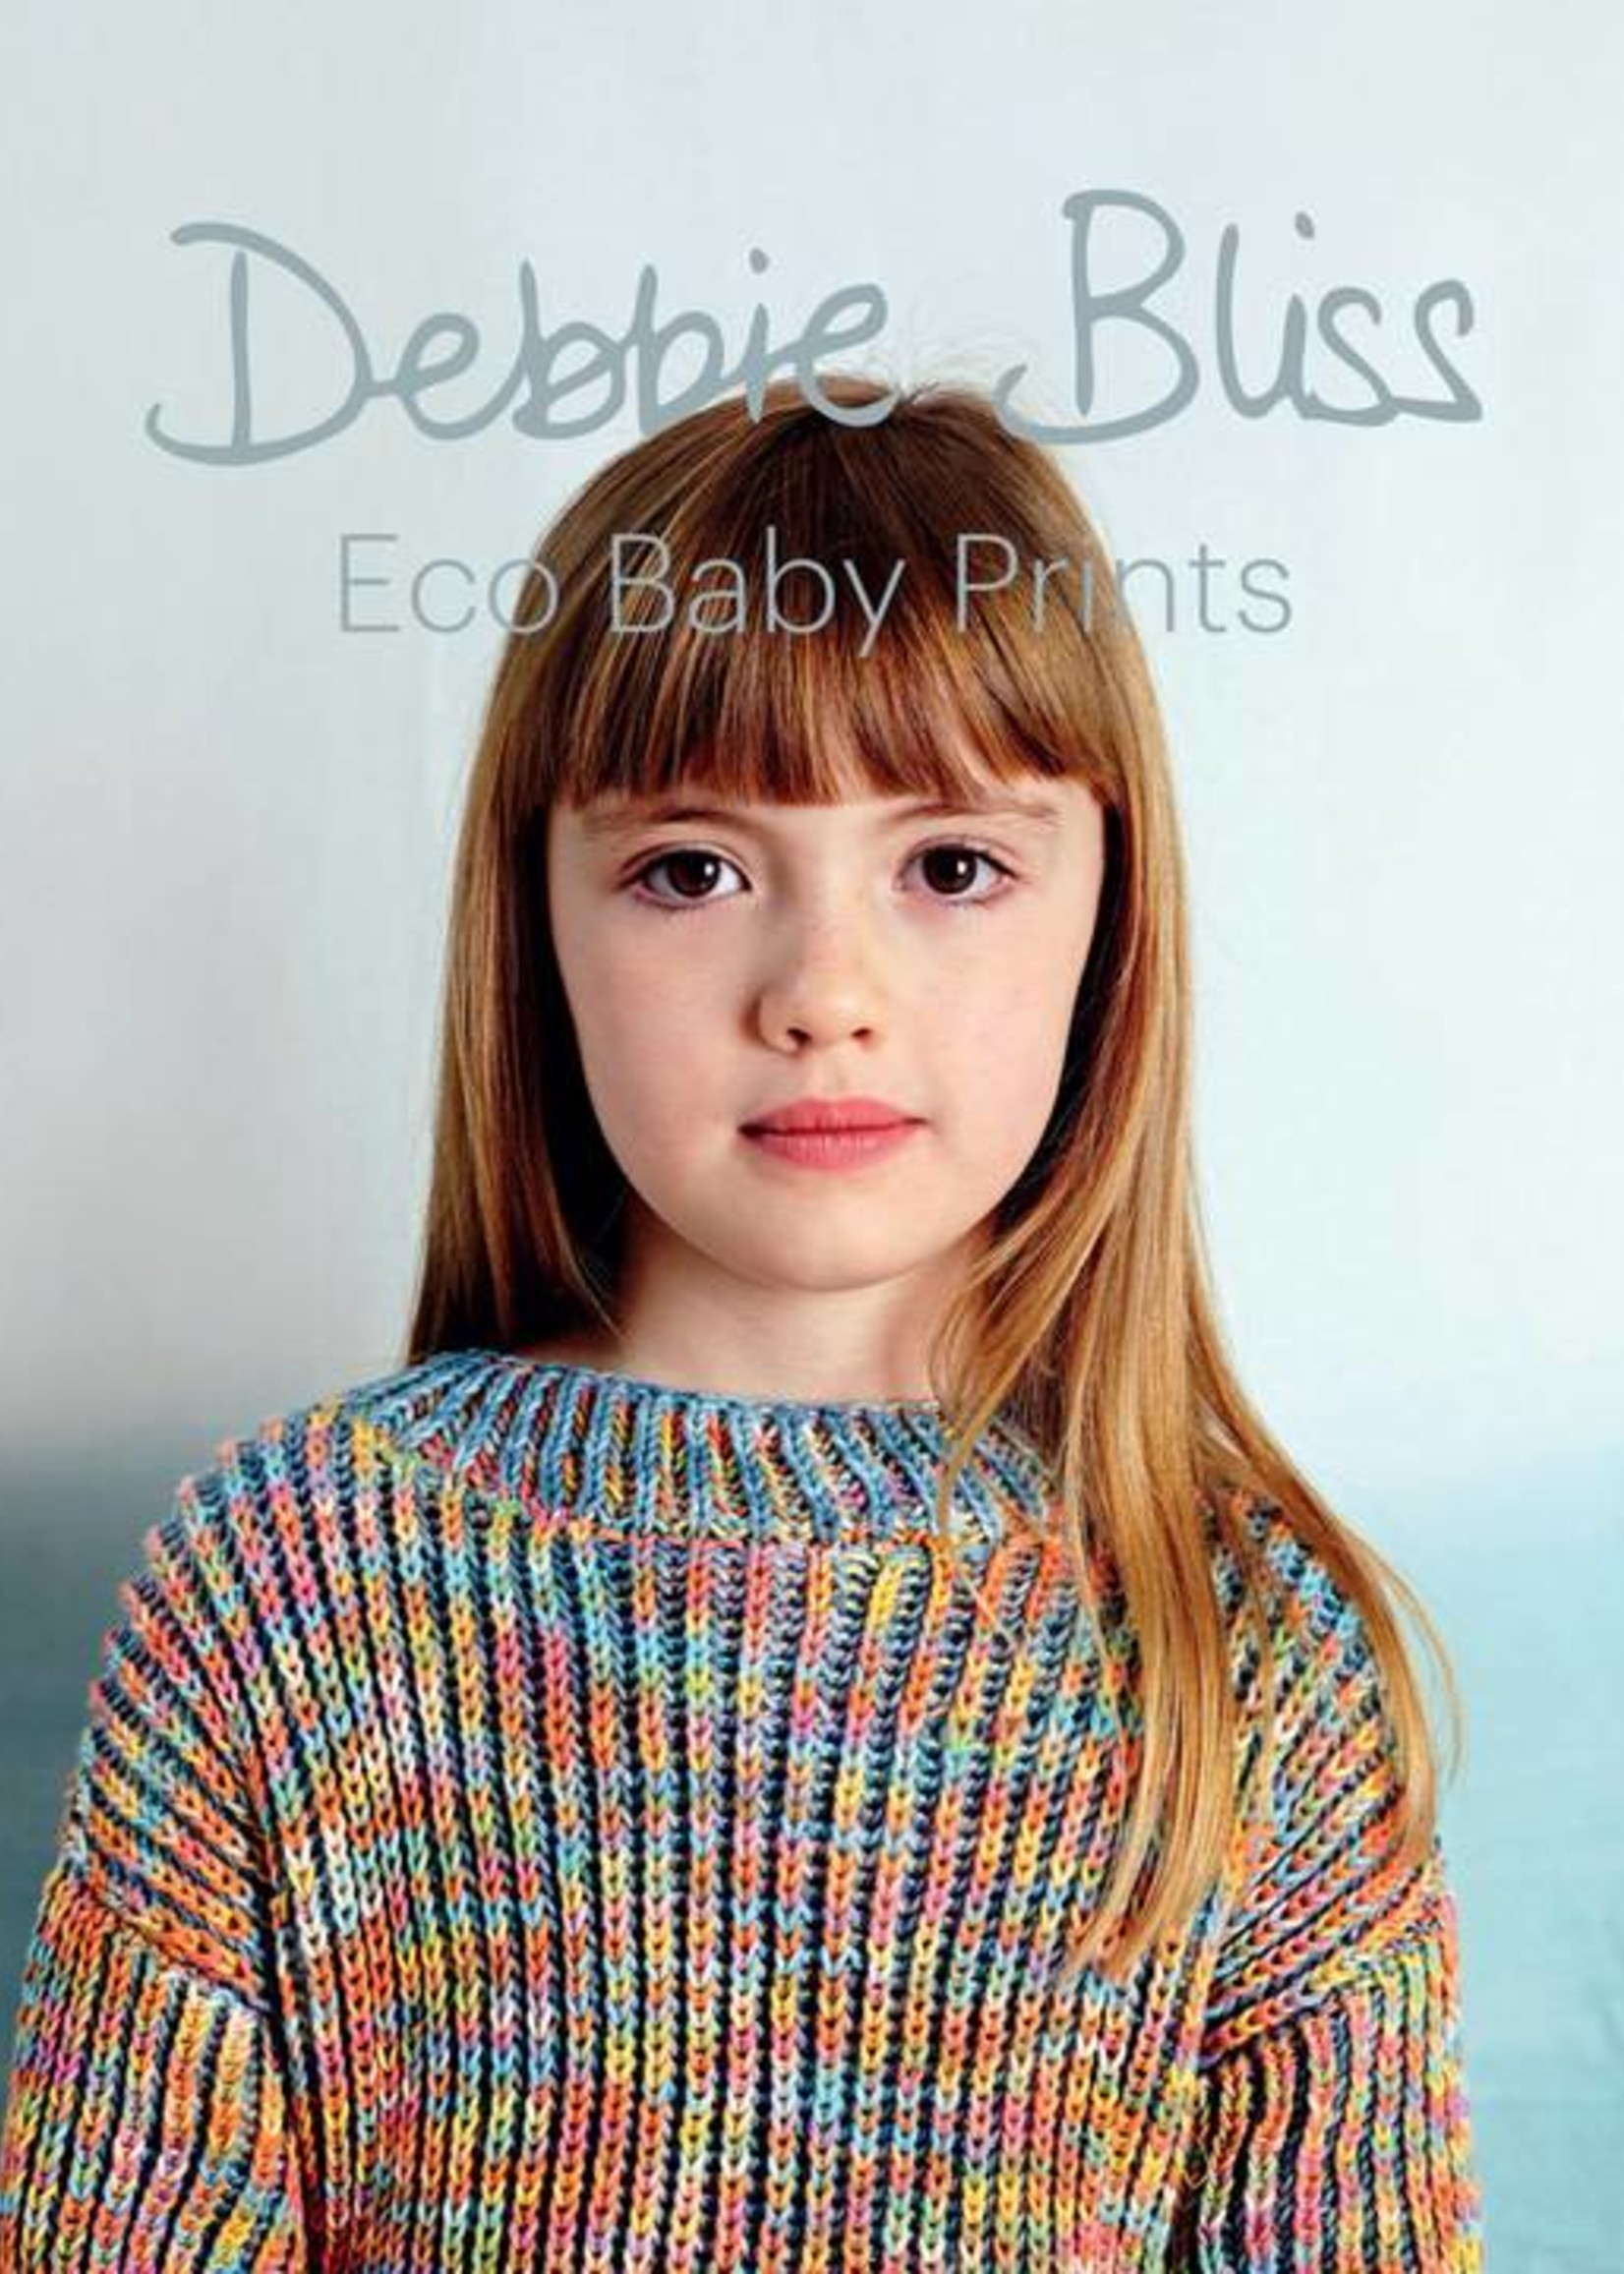 Debbie Bliss, 12 designs for ages from 3 months to 6 years in Eco Baby Prints